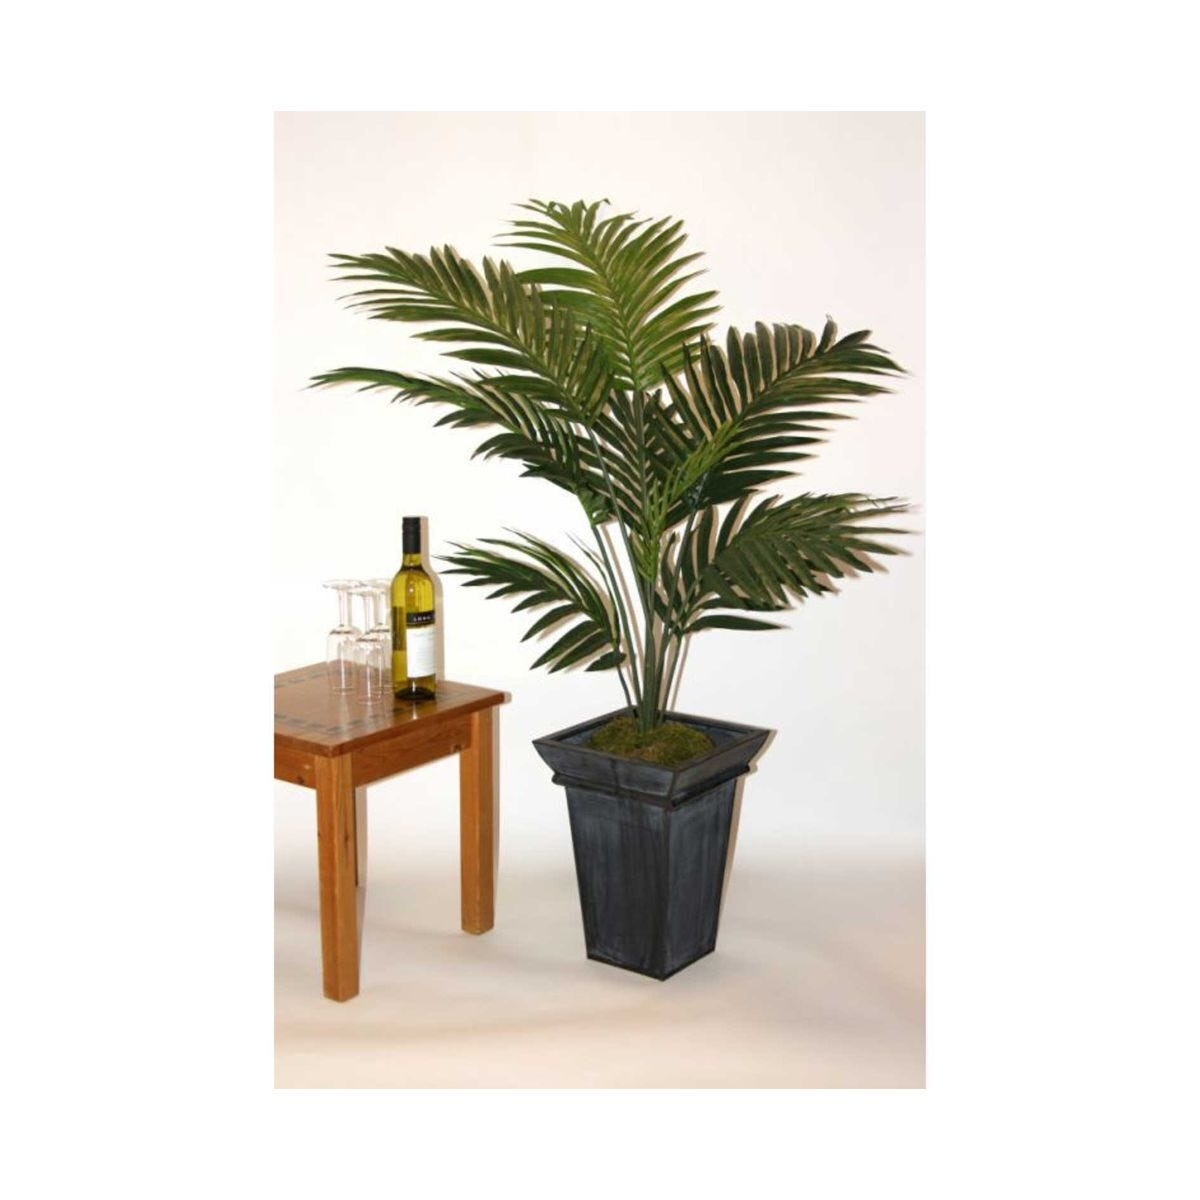 Paradise Palm Tree Designer Lifelike Plant Display